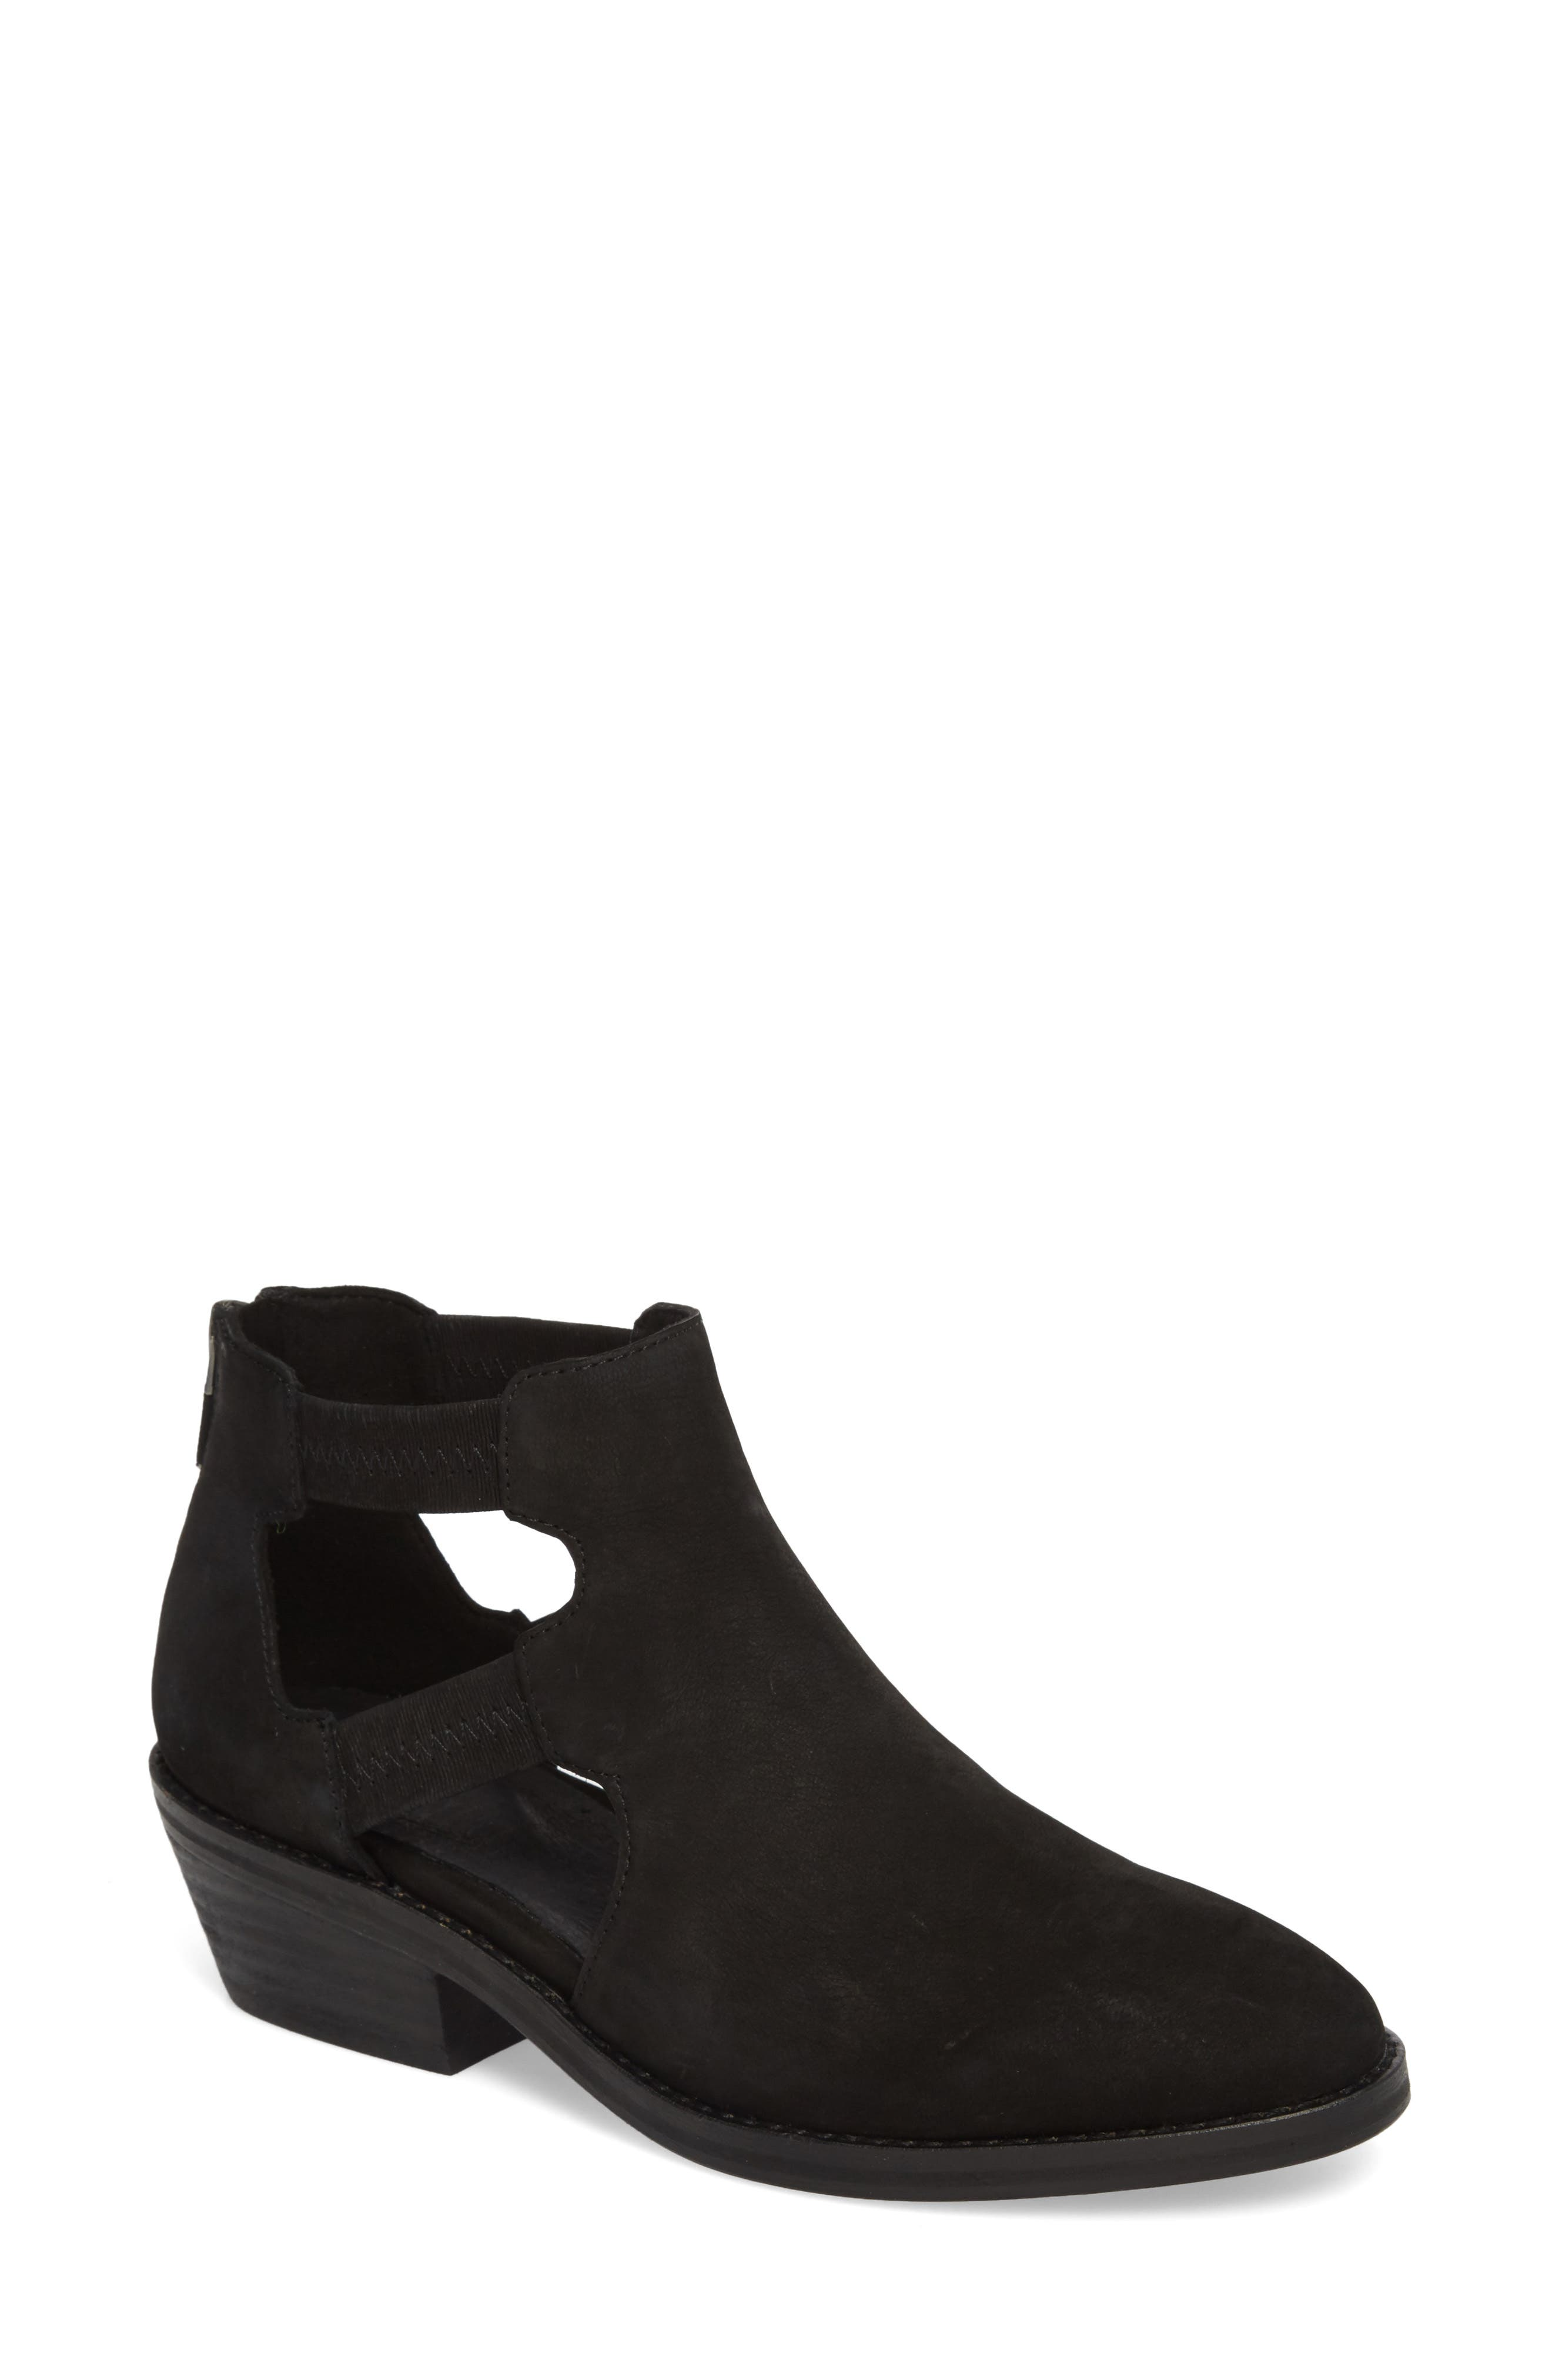 Vanda Cutout Bootie,                             Main thumbnail 1, color,                             001